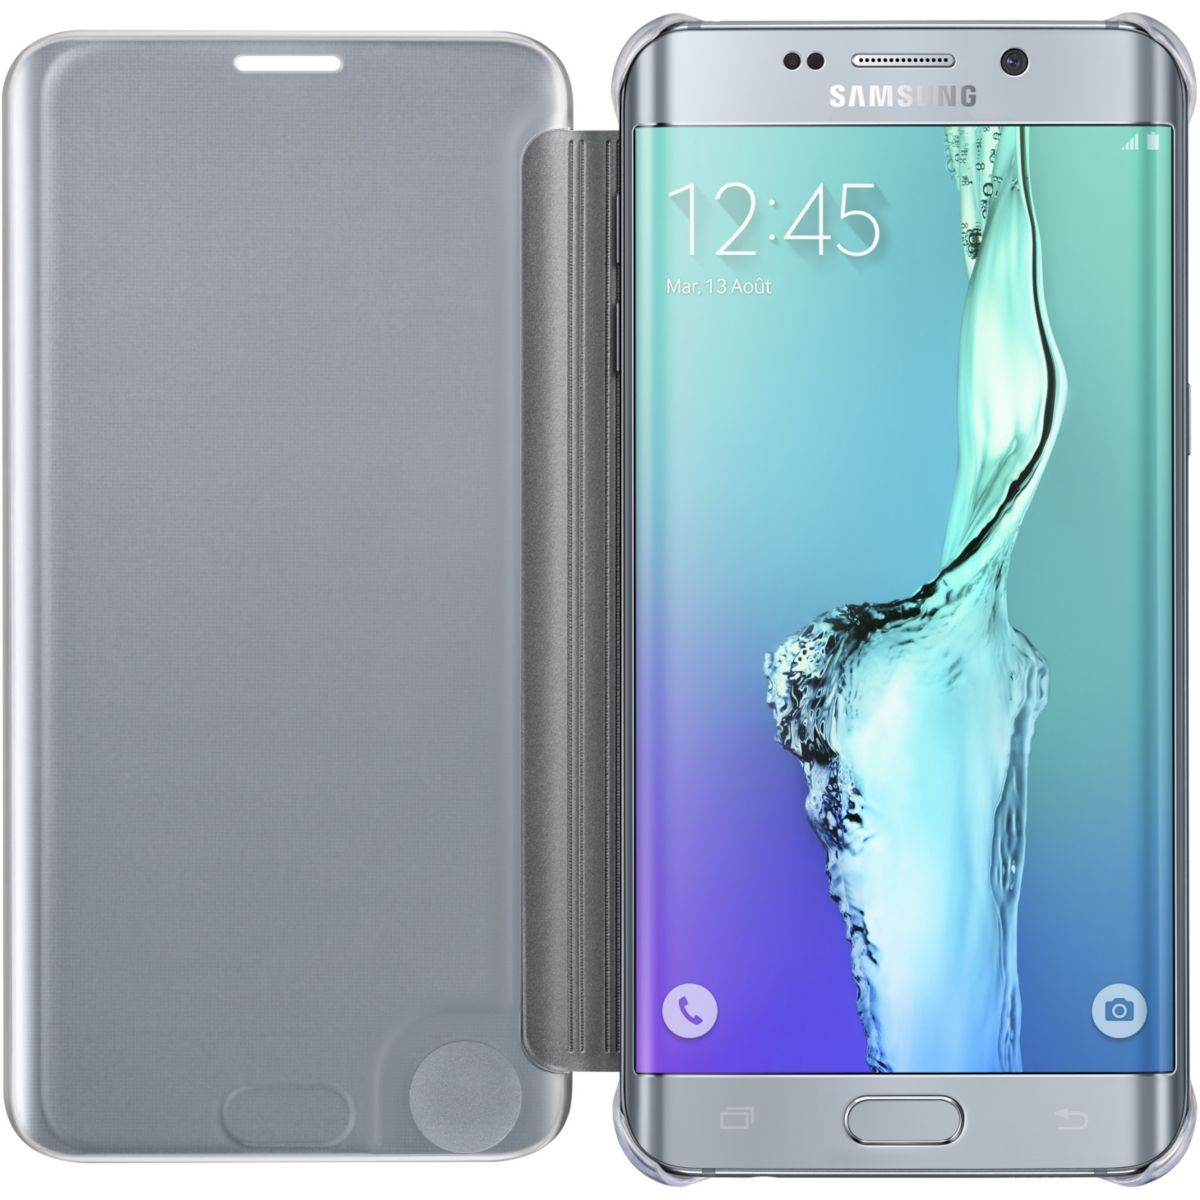 Etui samsung clear view galaxy s6 edge plus silver - soldes et bons plans